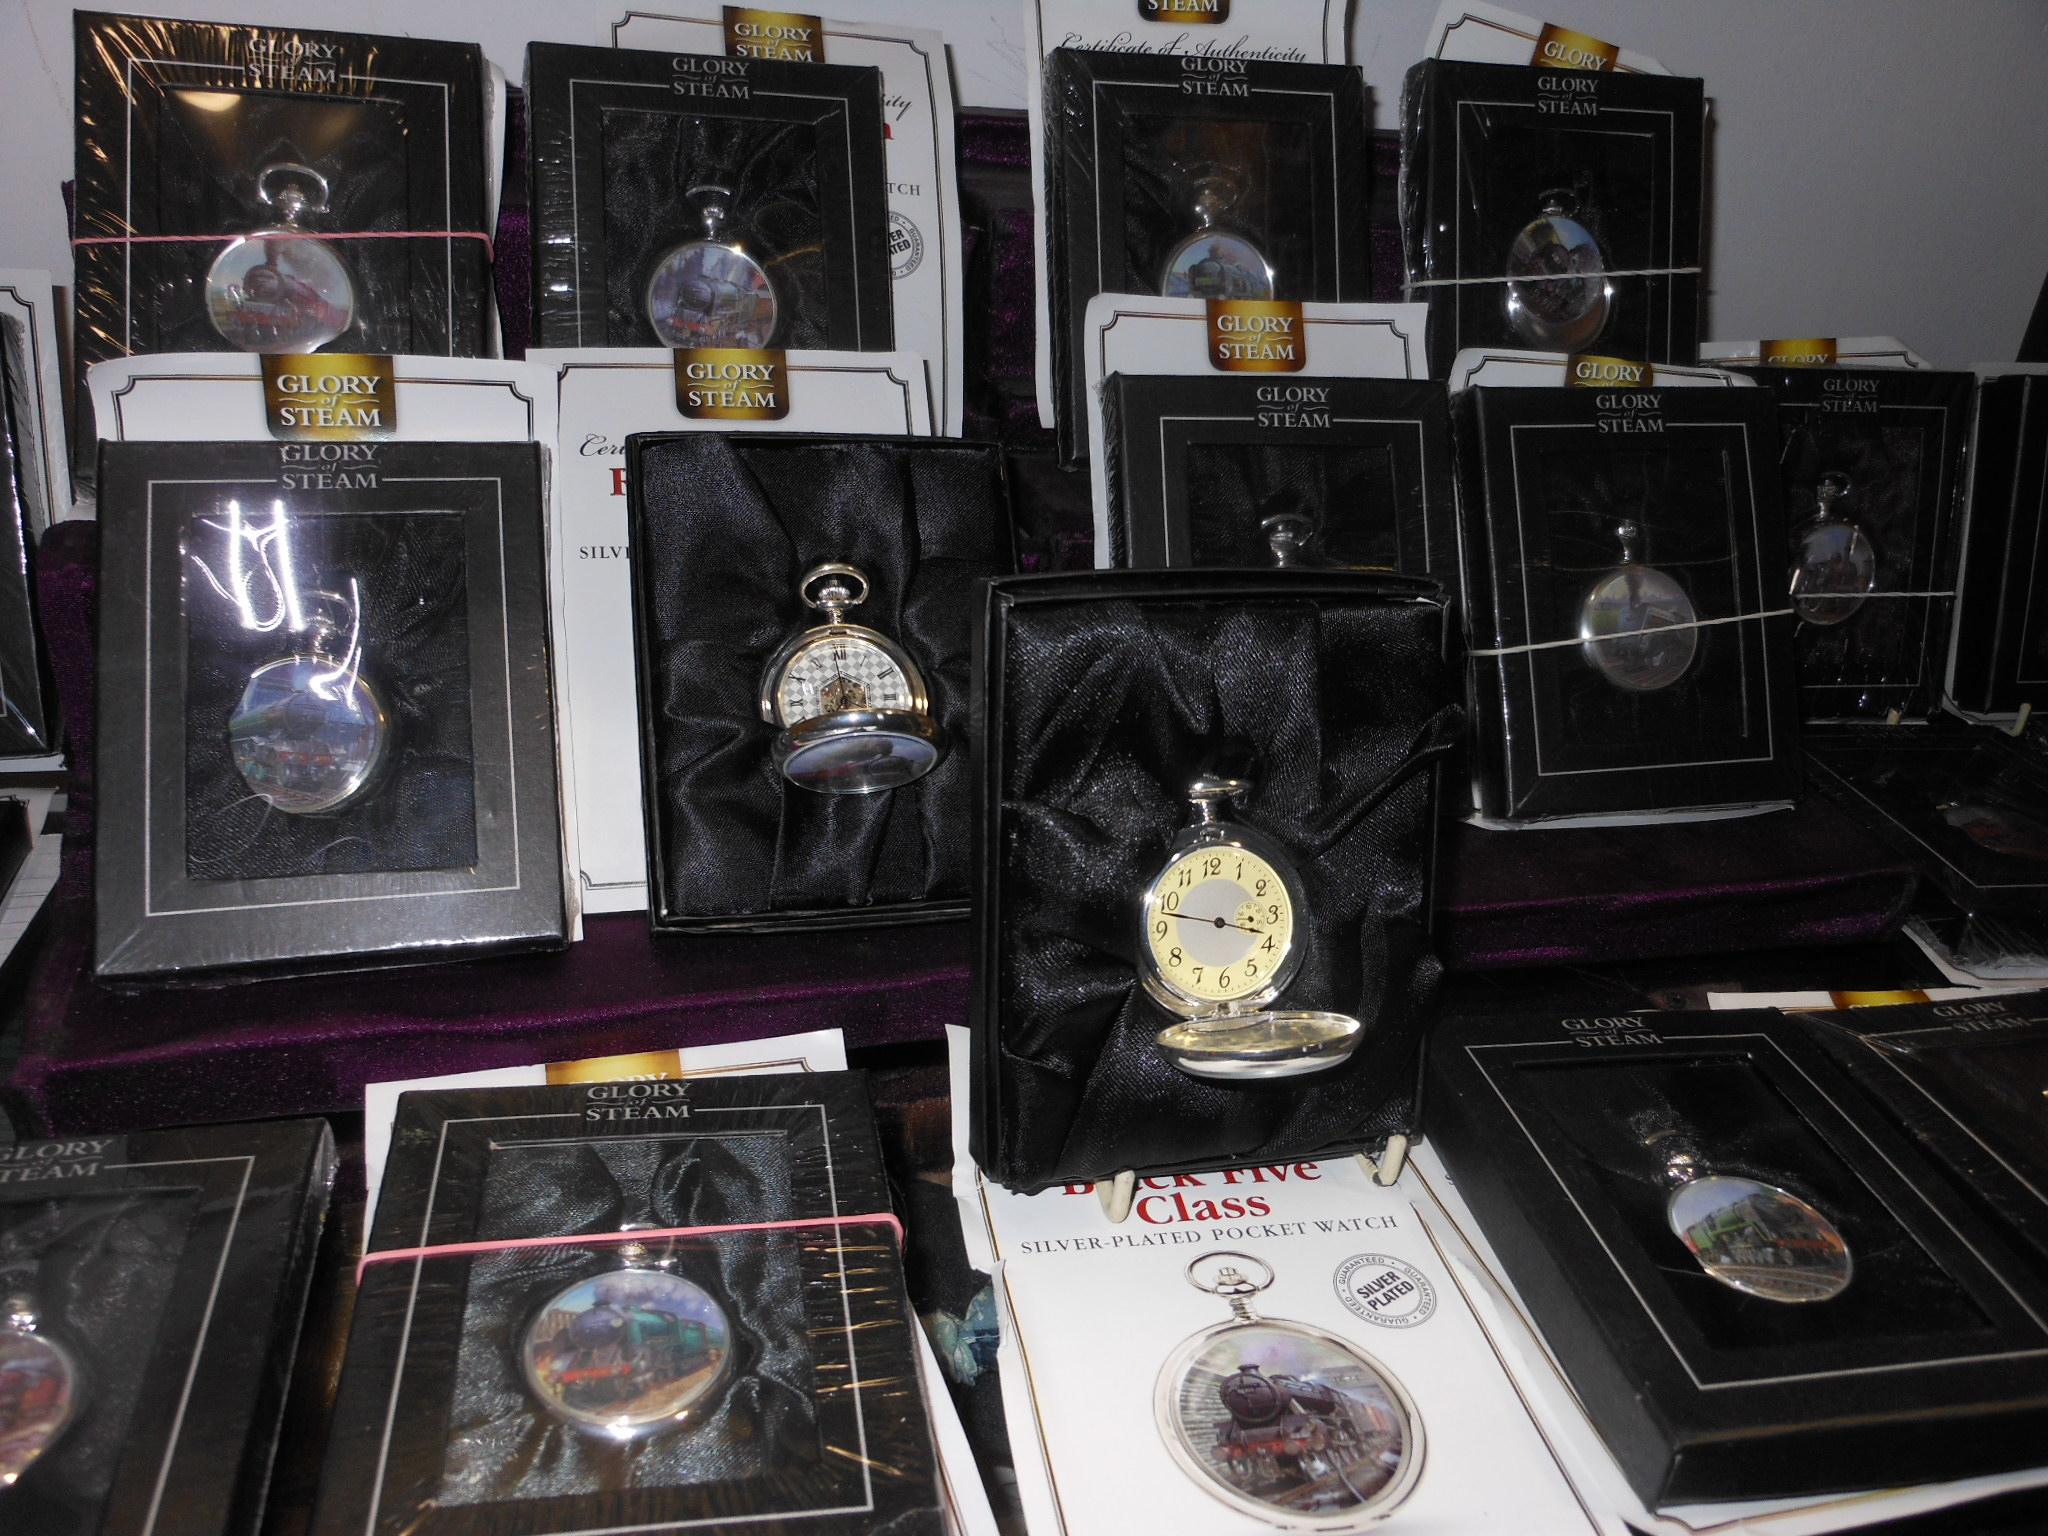 'Glory of Steam' Steam Locomotive Pocket Watch Collection 01.12.2018 Limassol